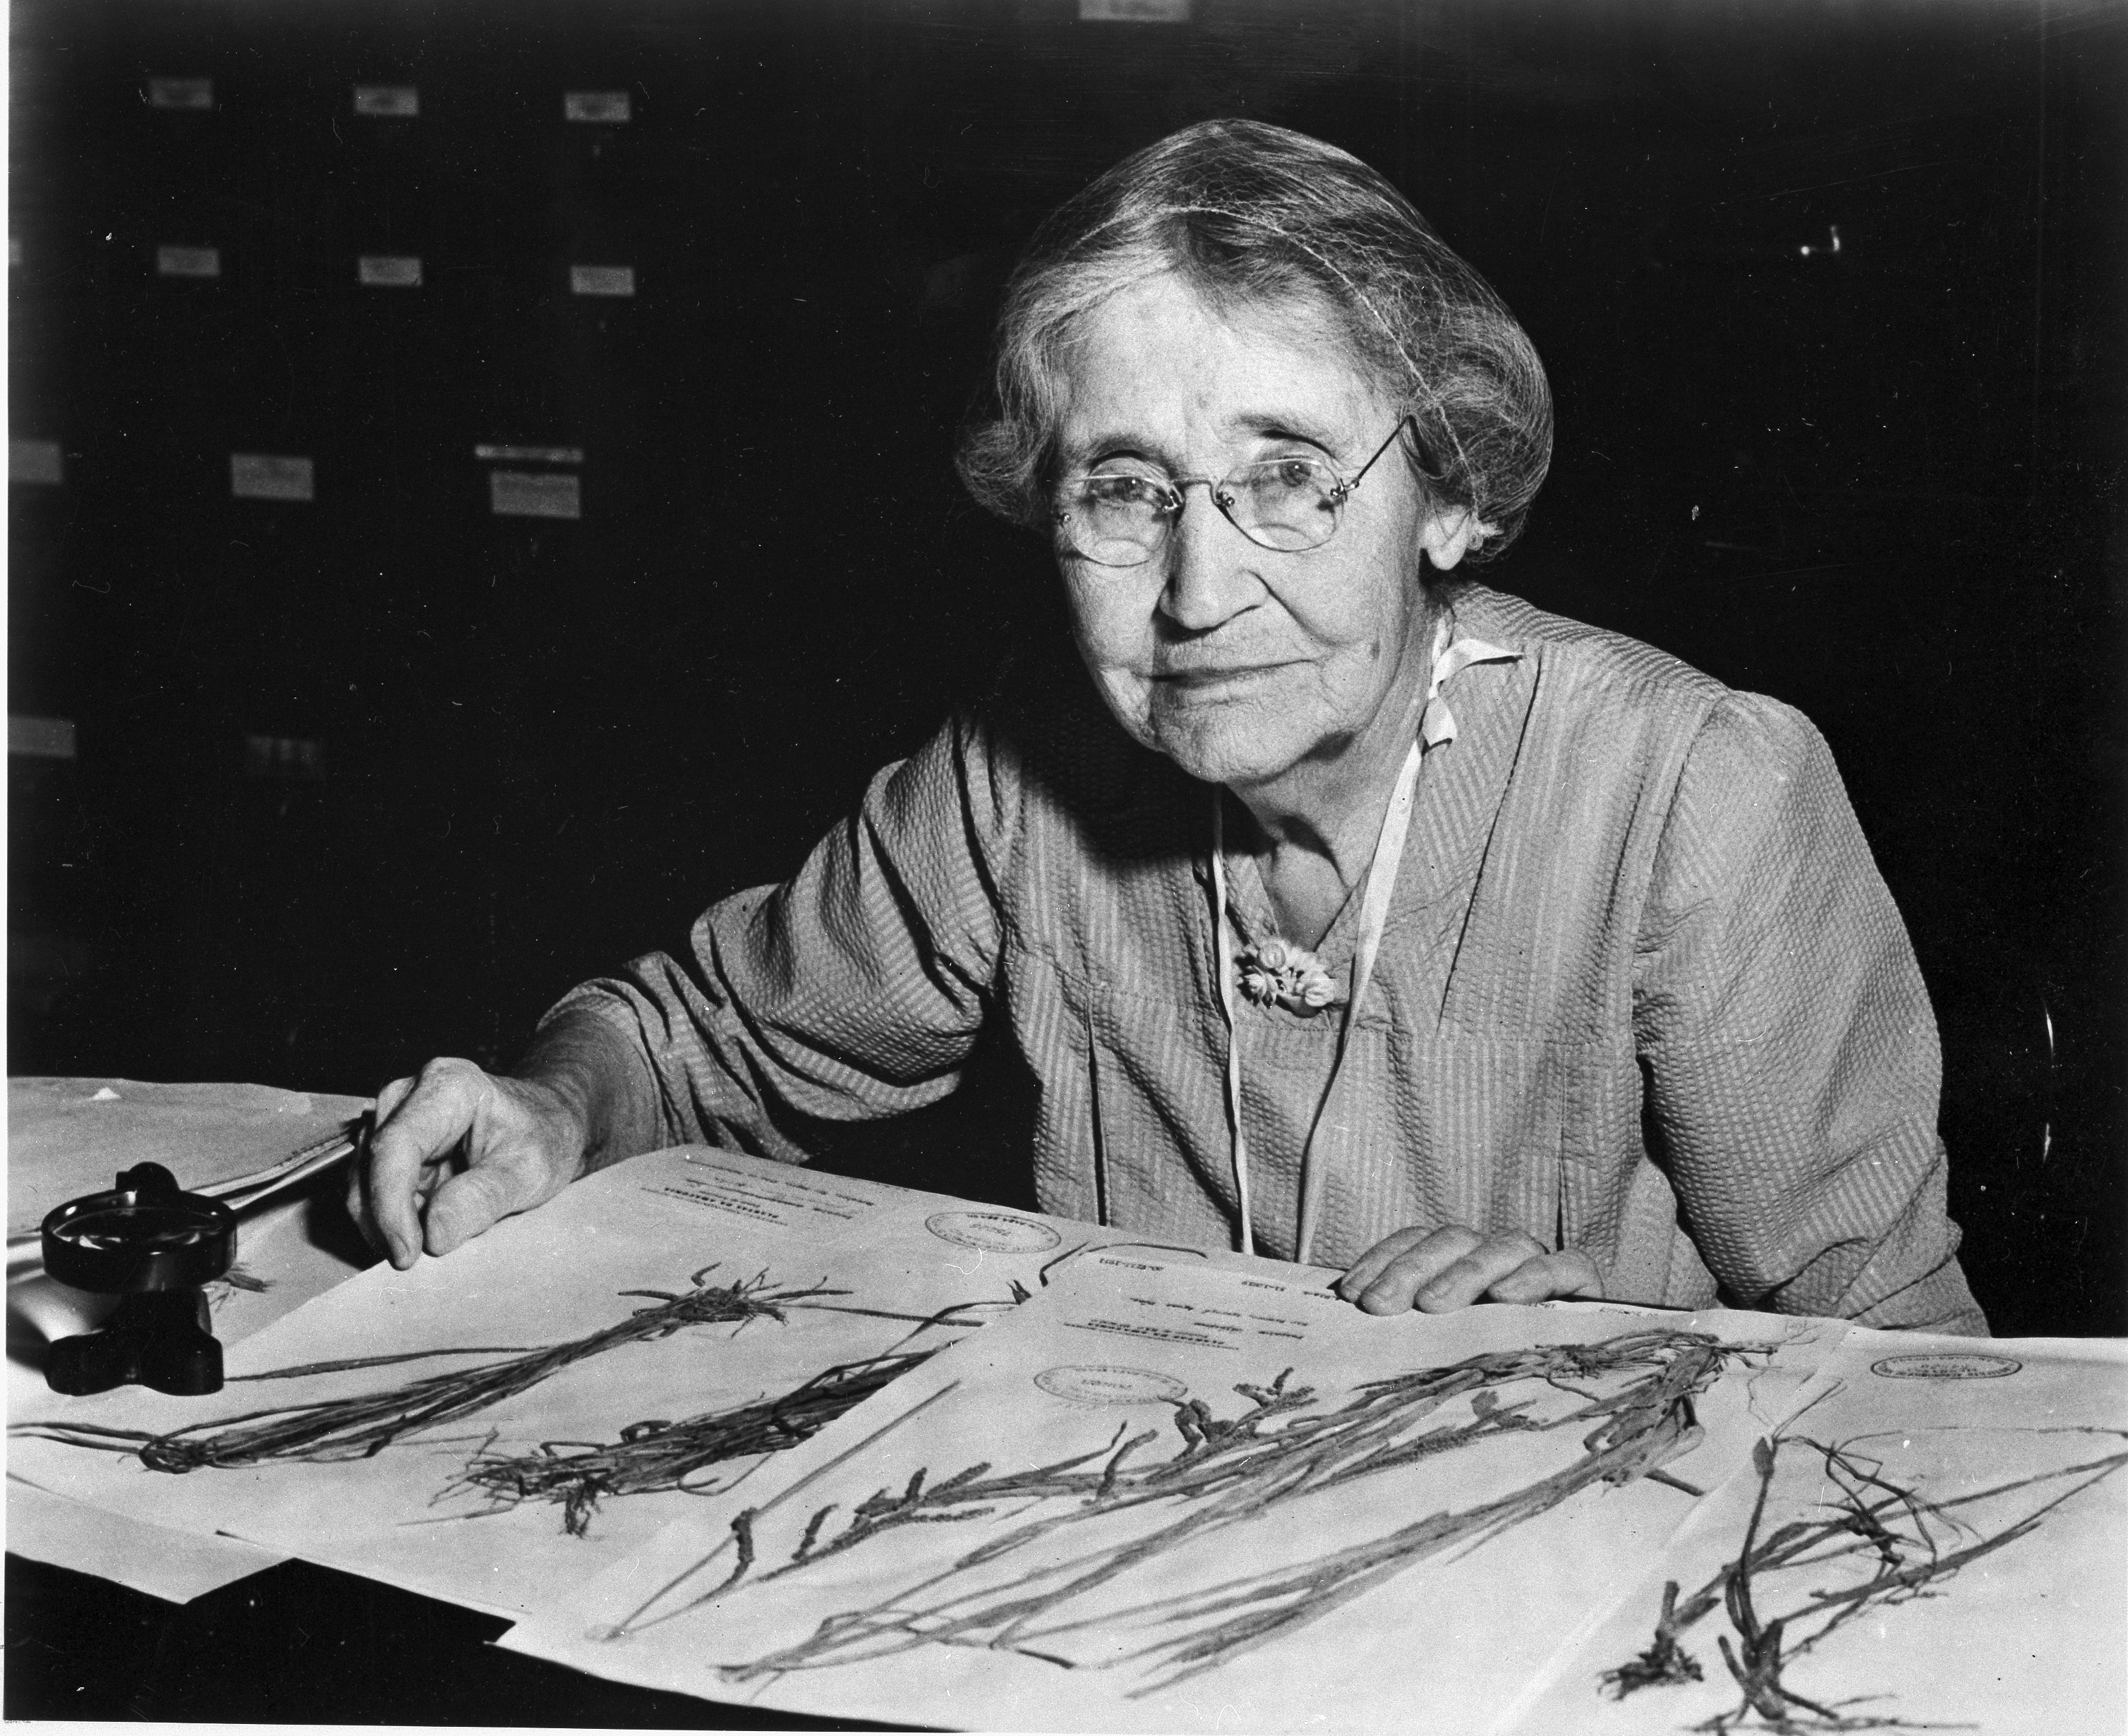 Mary Agnes Chase (1869-1963), sitting at desk with specimens, SIA2009-0712